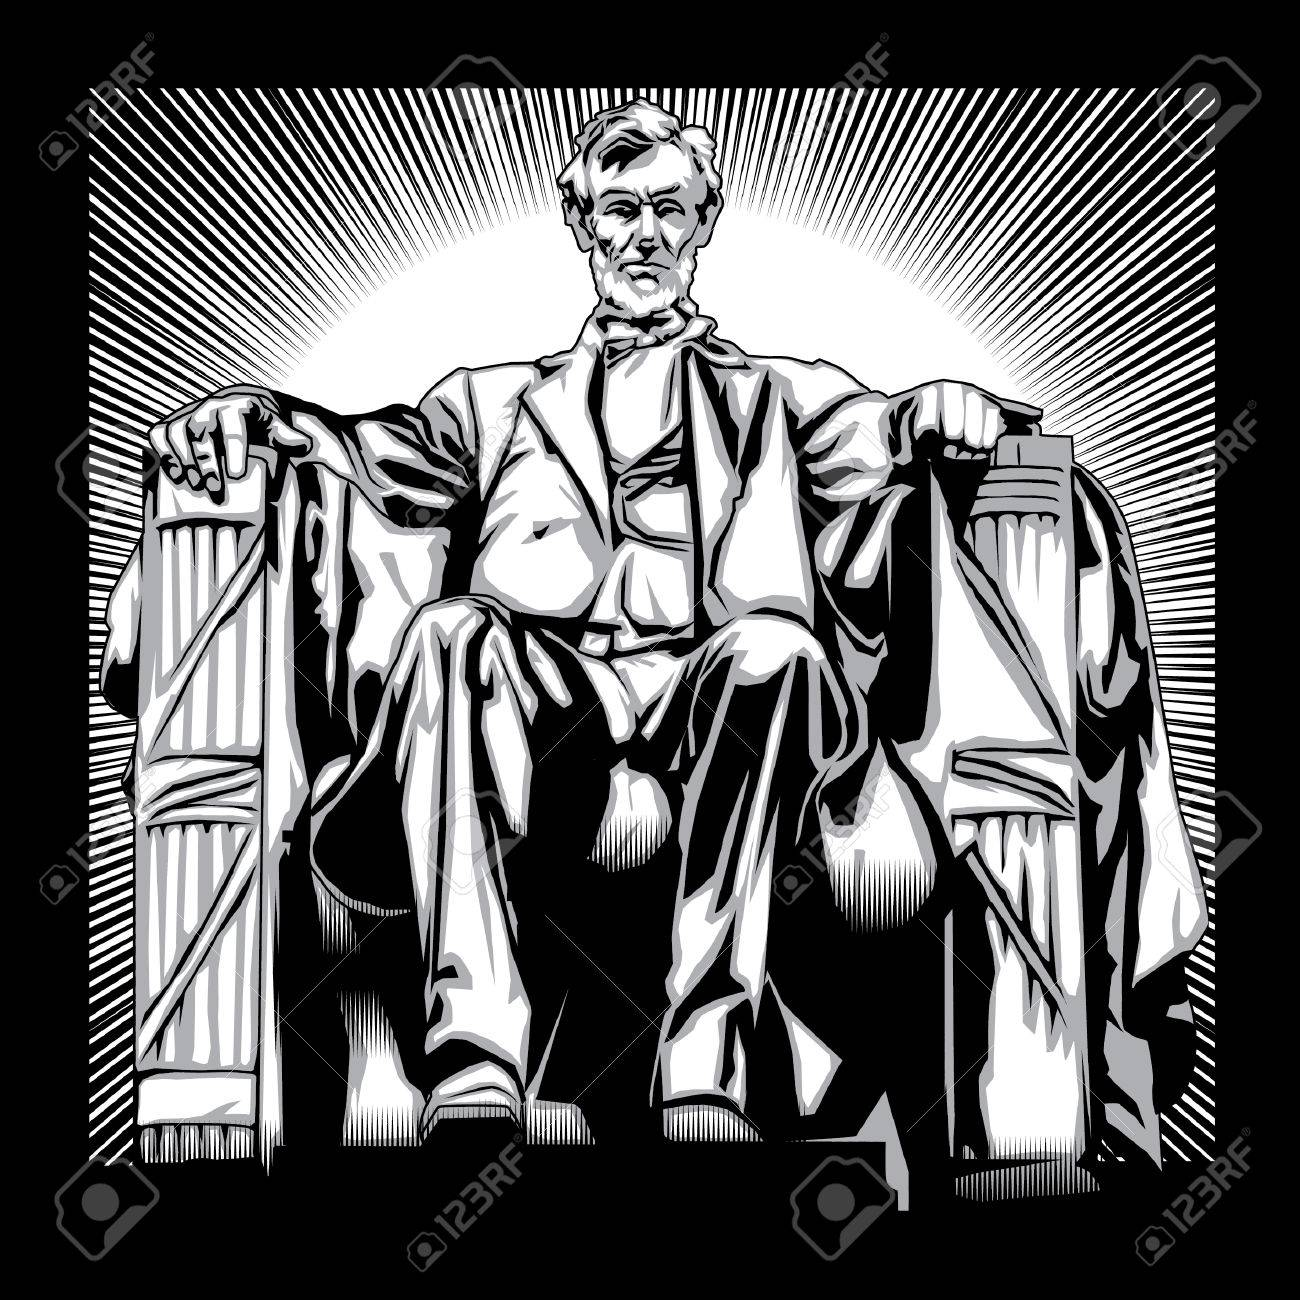 1300x1300 Lincoln Memorial Royalty Free Cliparts, Vectors, And Stock